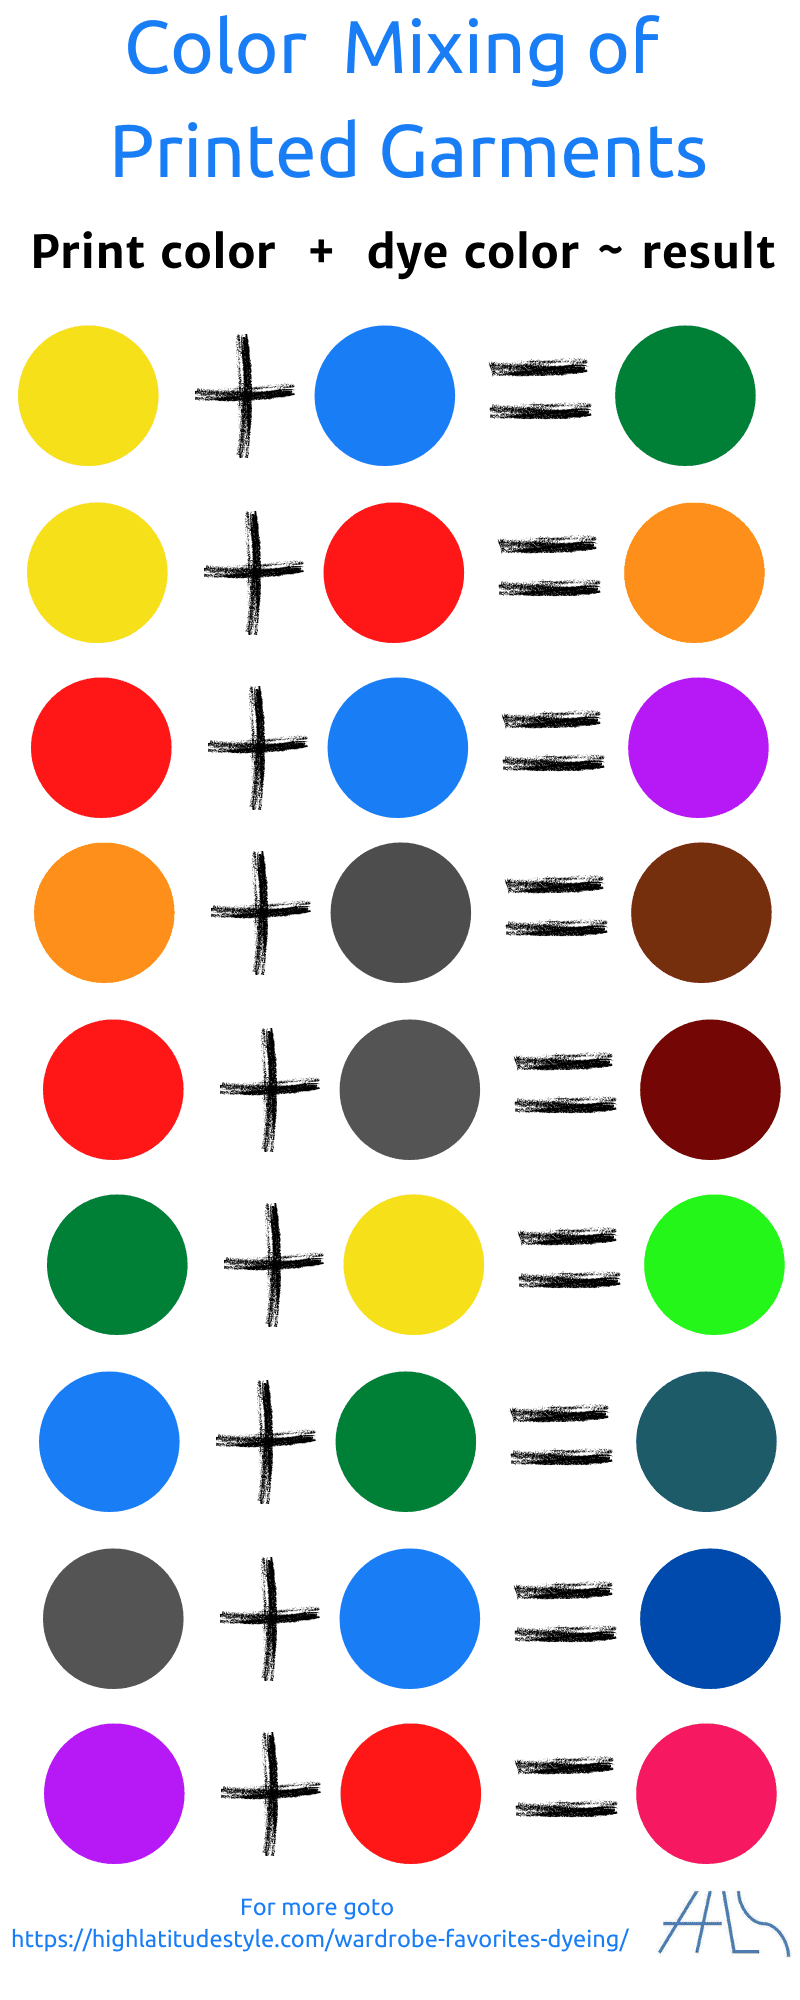 infographic showing approximate result of print color after dyeing